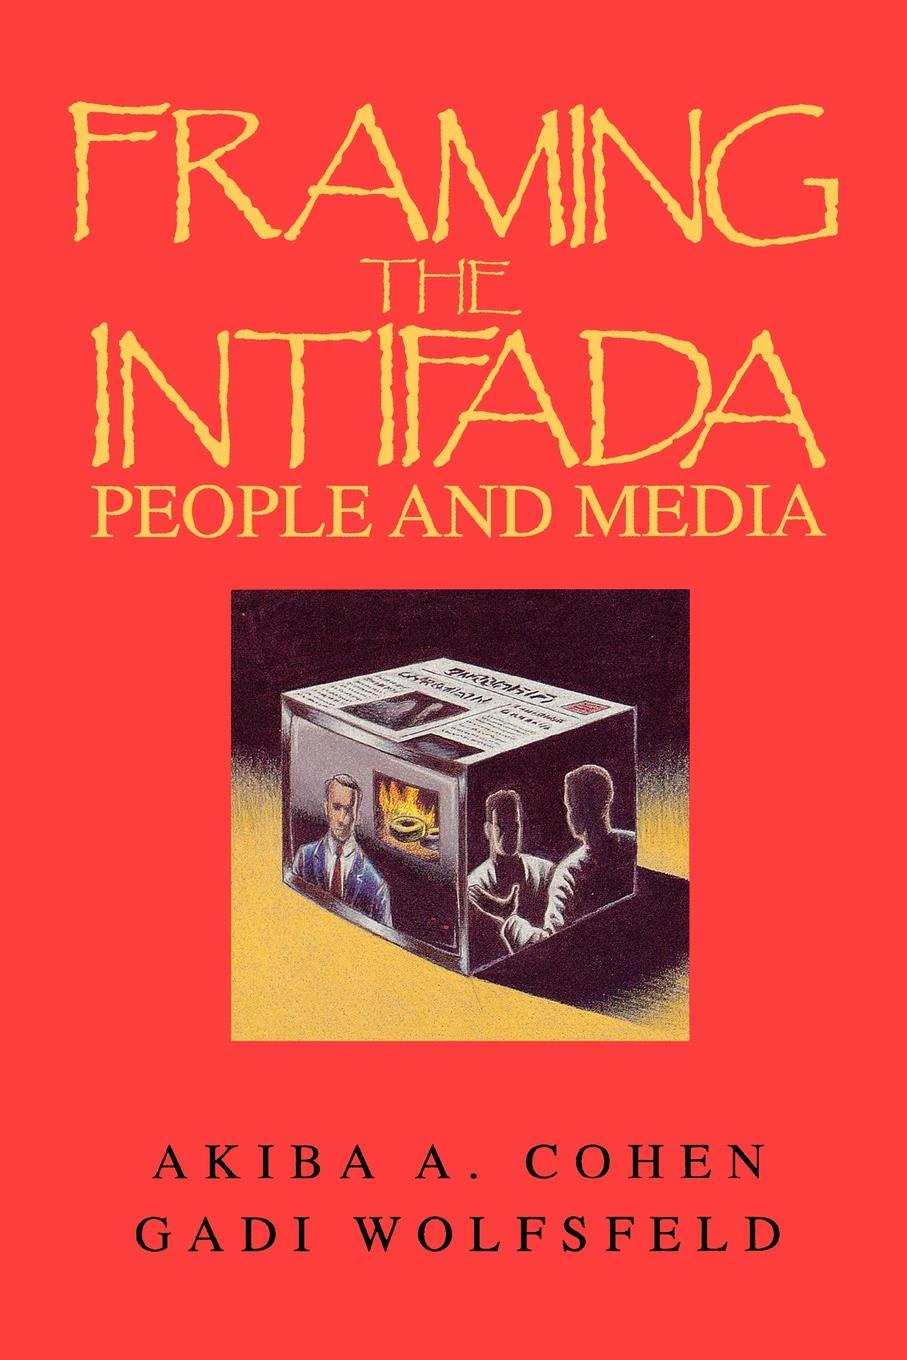 Akiba A. Cohen, Gadi Wolfsfeld Framing the Intifada. People and Media